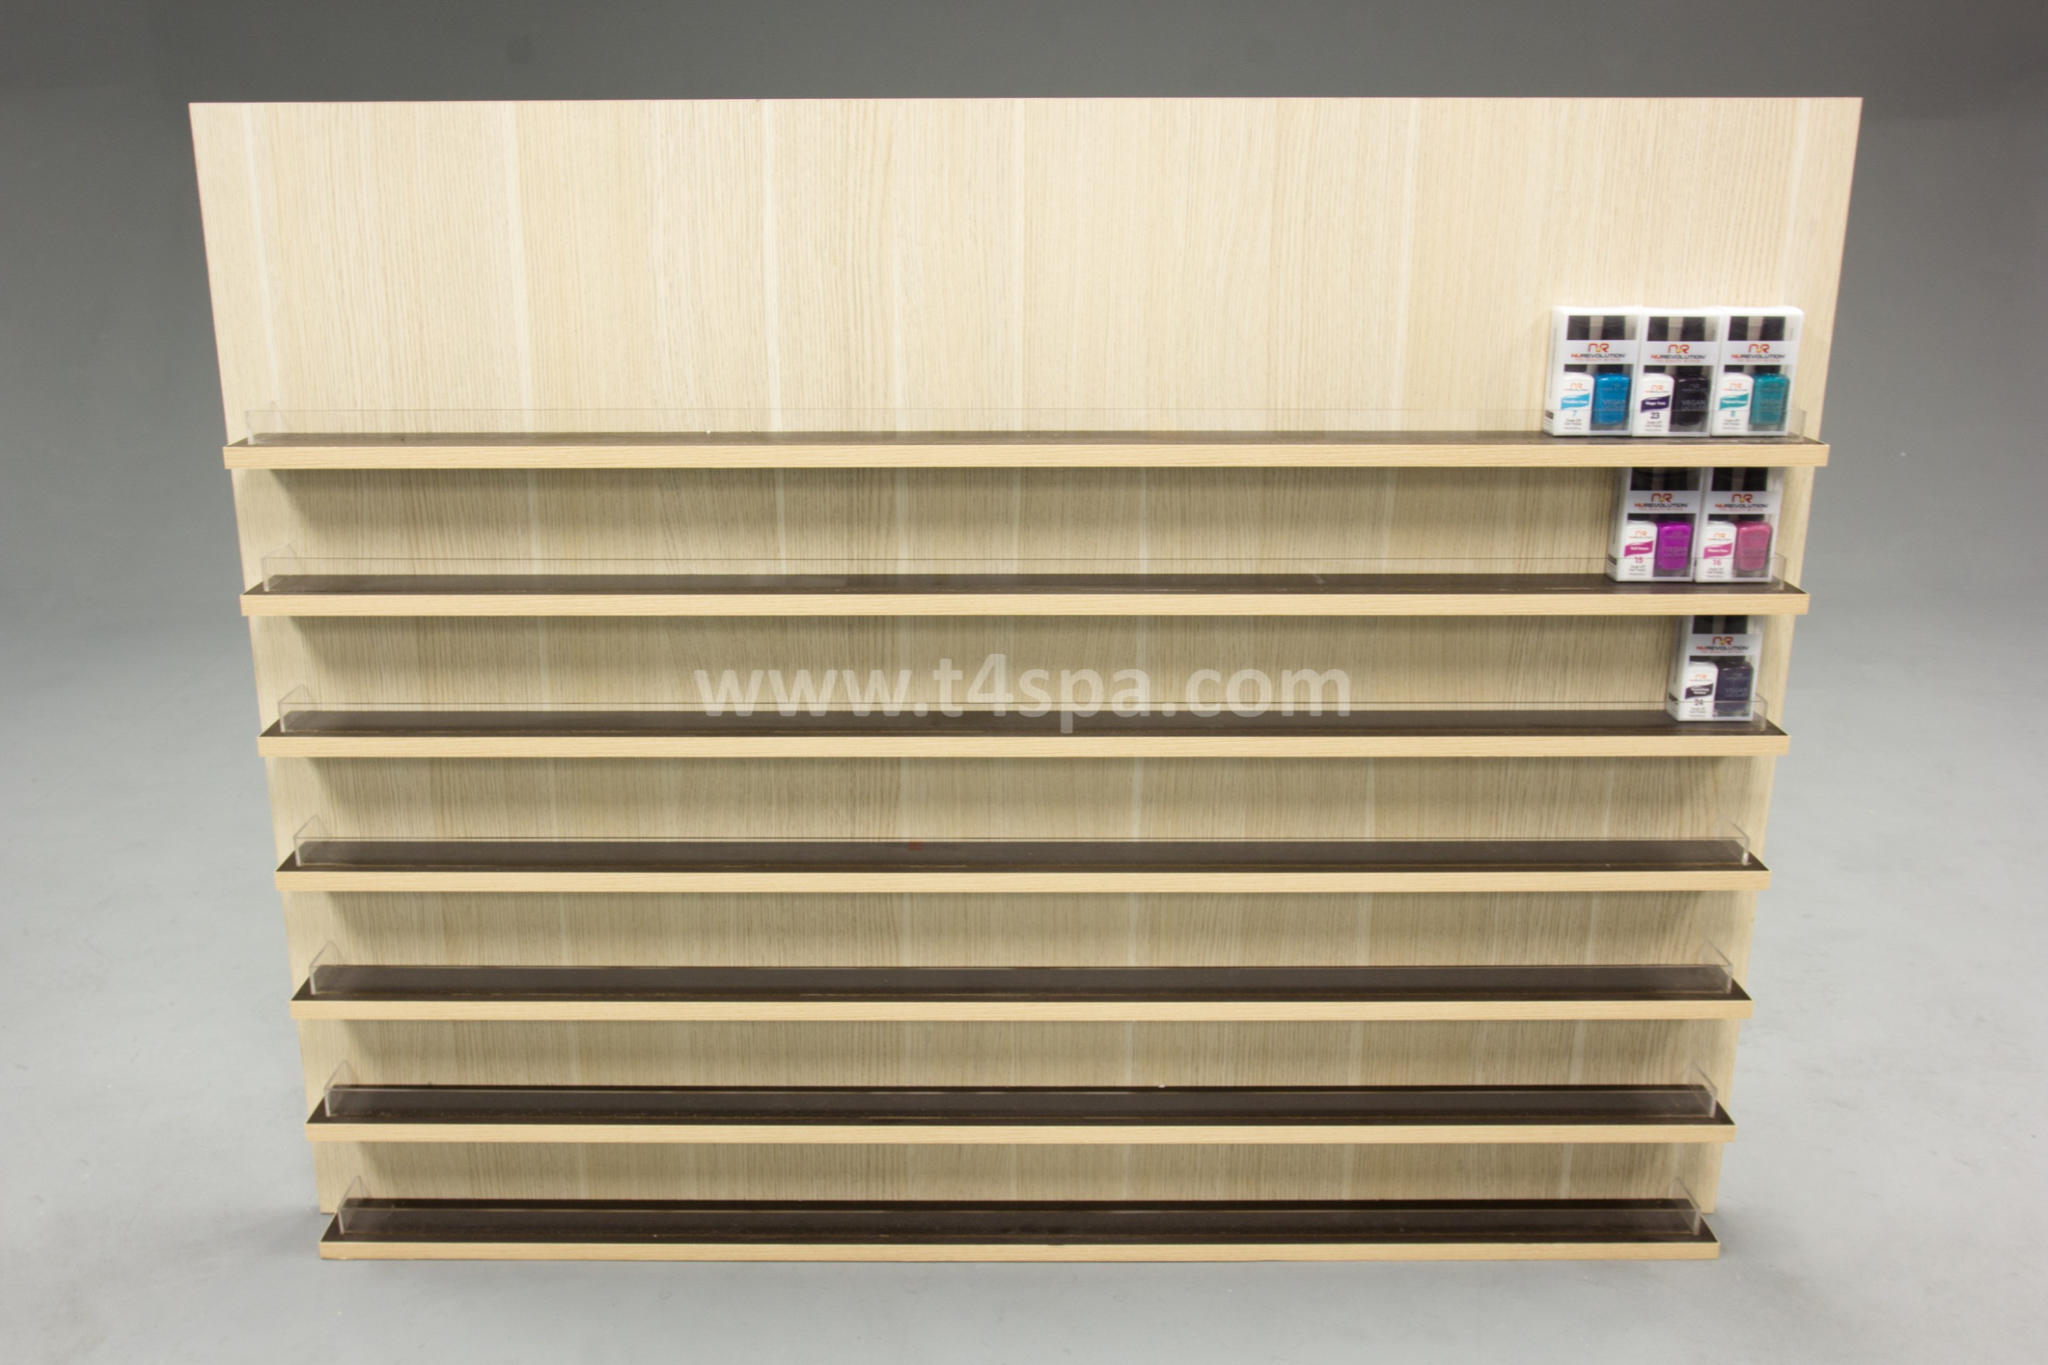 TD-9031 Wall Polish Rack-2